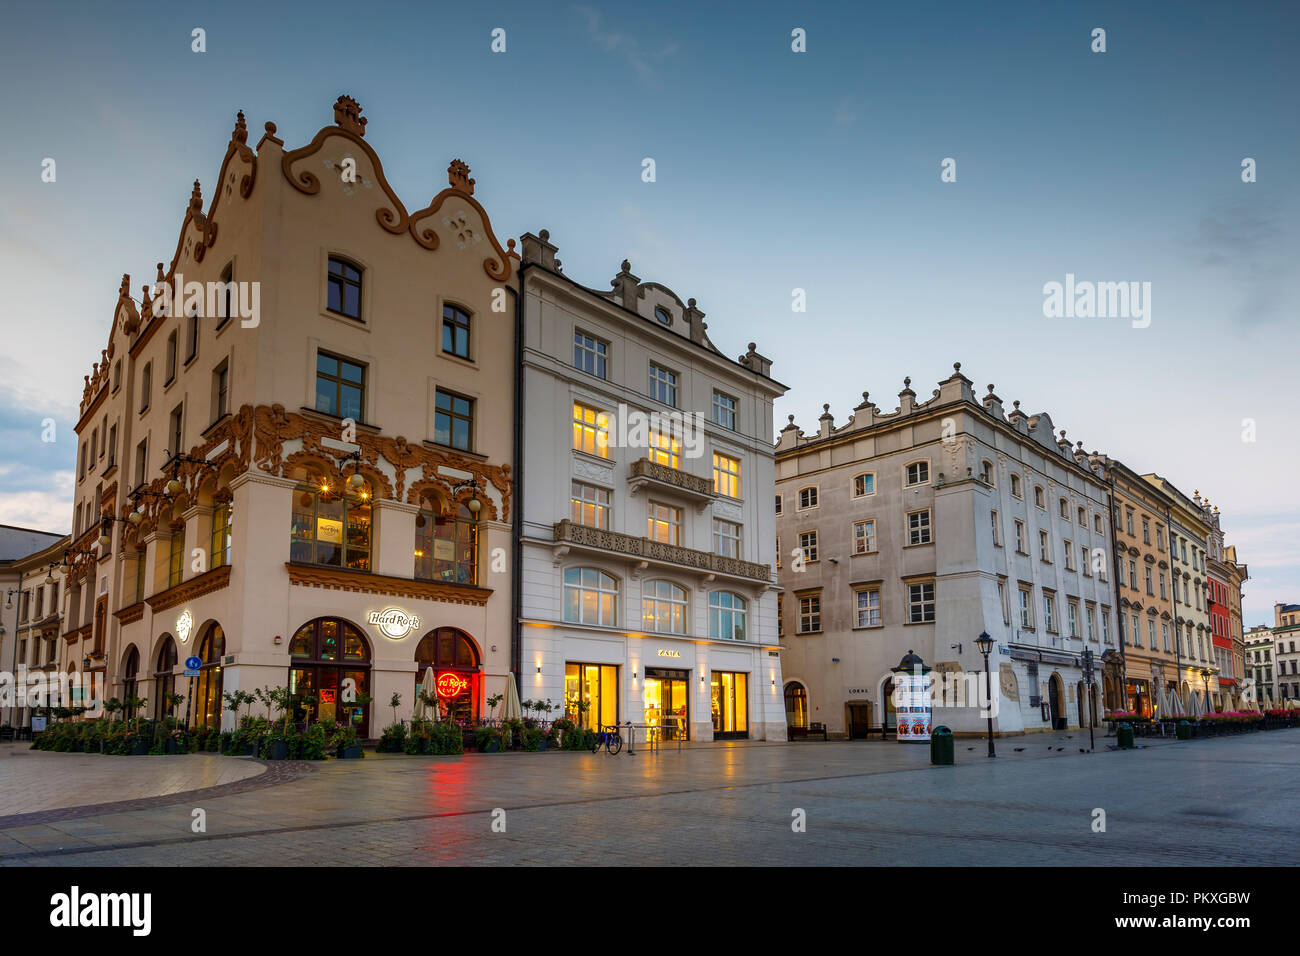 Krakow, Poland - August 23, 2018: Townhouses in the main square of Krakow, Poland. - Stock Image